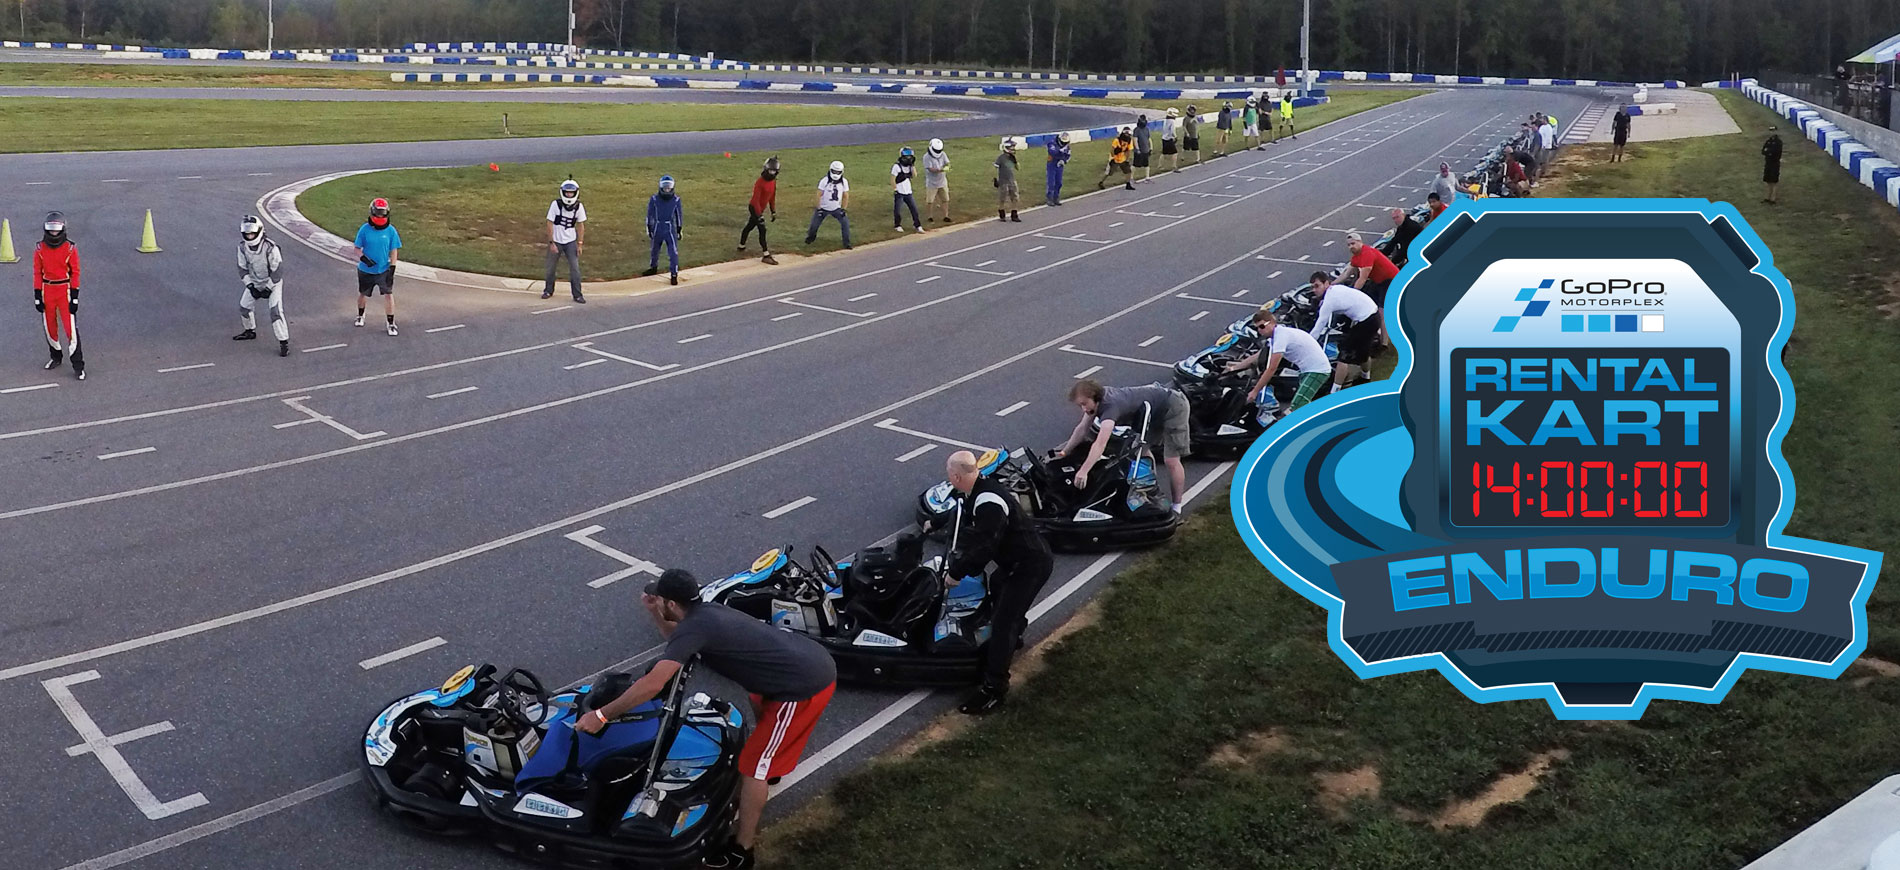 14-Hour Rental Kart Team Enduro, Sept. 21-22